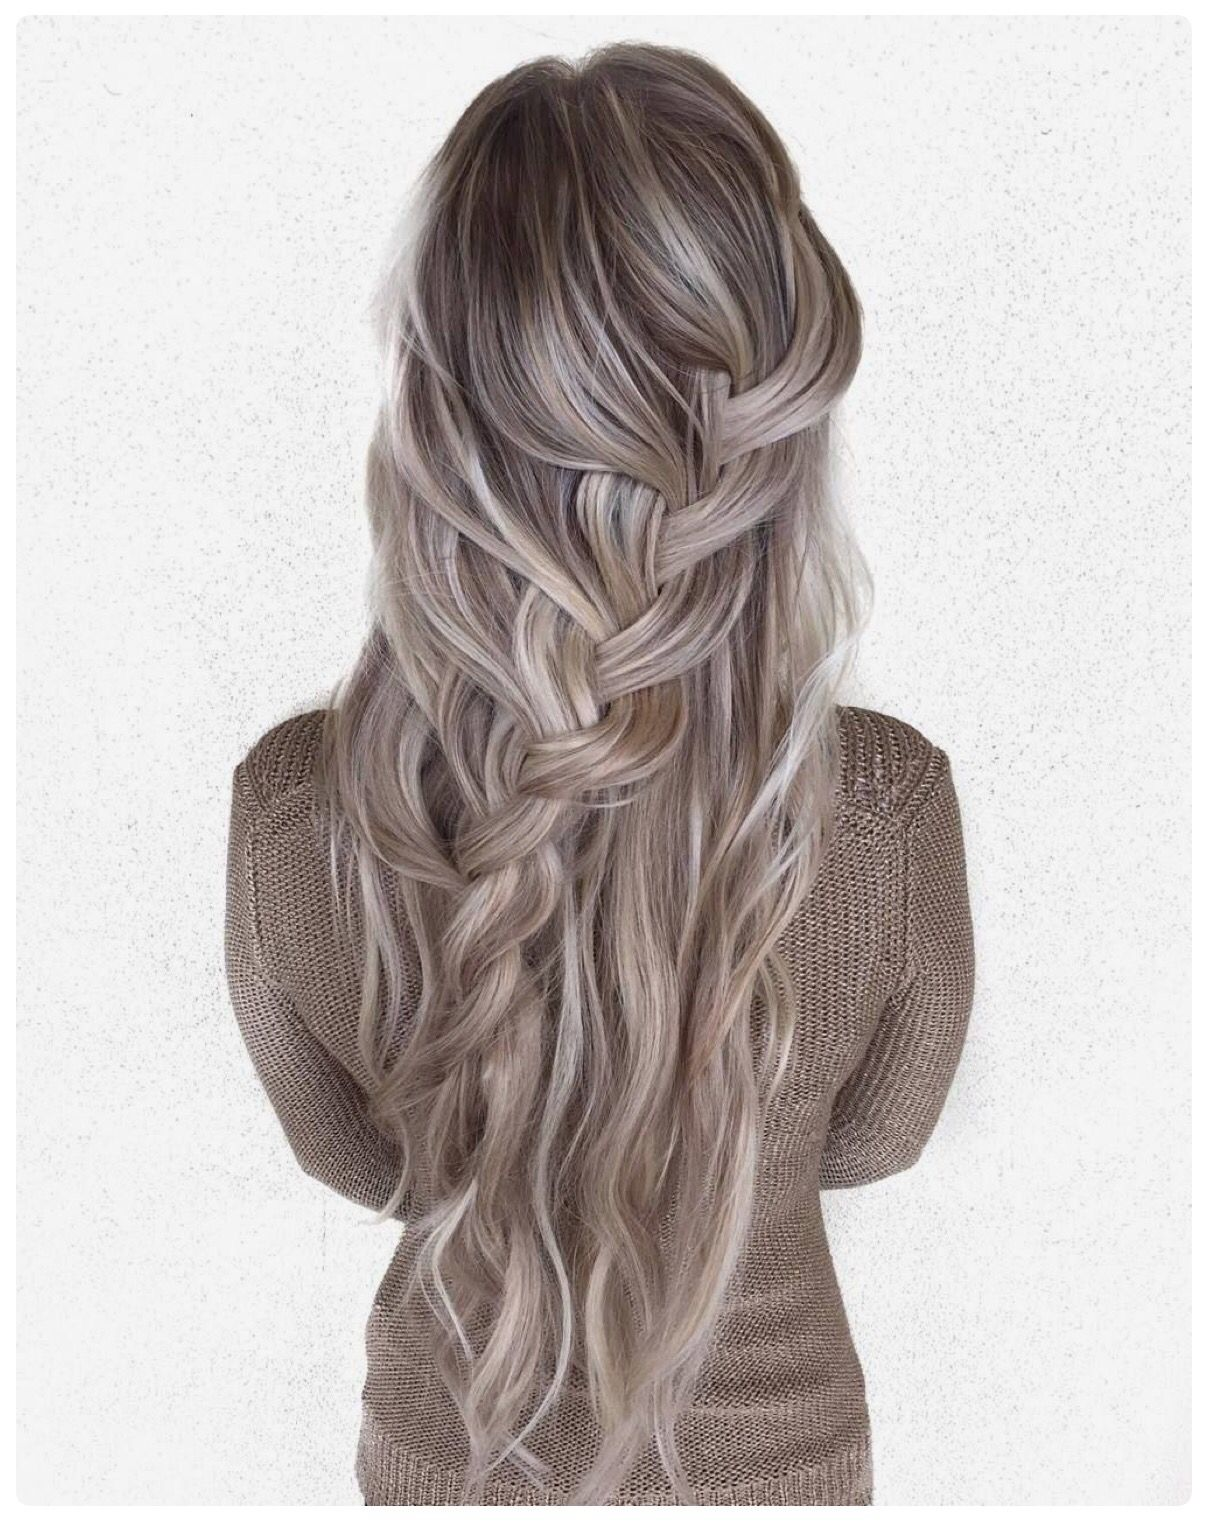 Beautiful blonde and silver hair hair pinterest vlasy Účes a